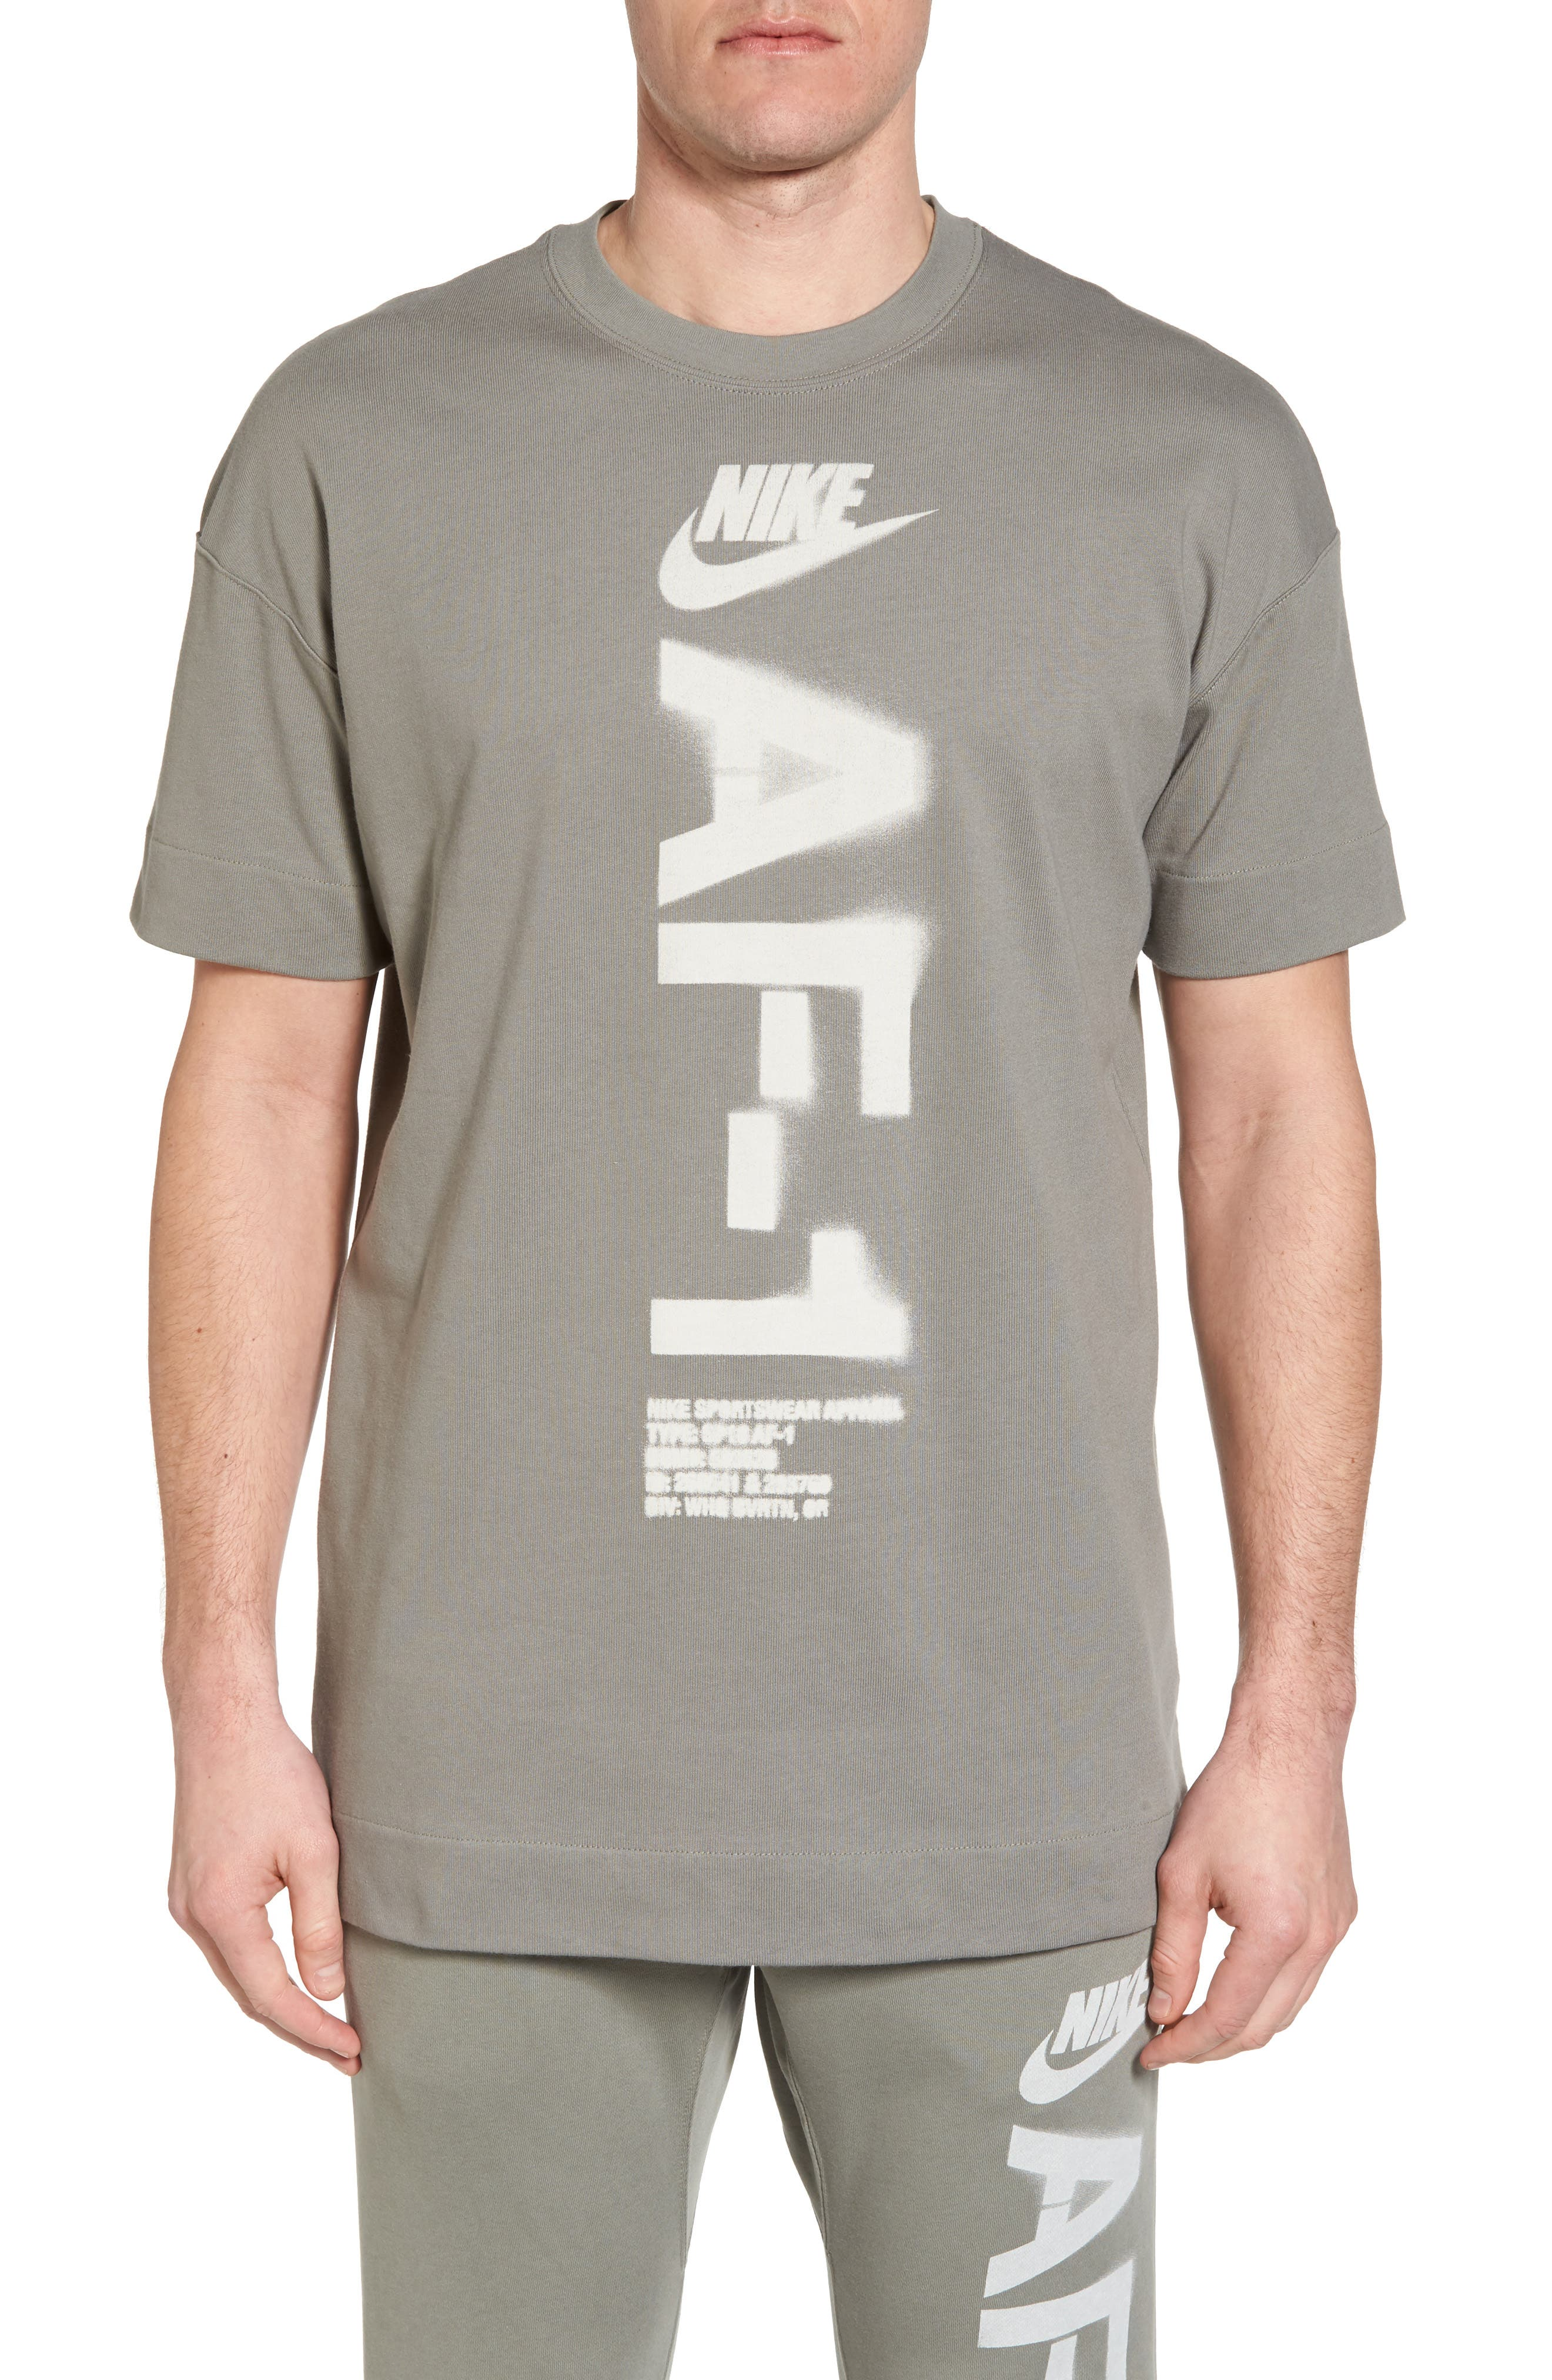 NSW Heavyweight AF-1 T-Shirt,                             Main thumbnail 1, color,                             Neutral Olive/ Medium Olive